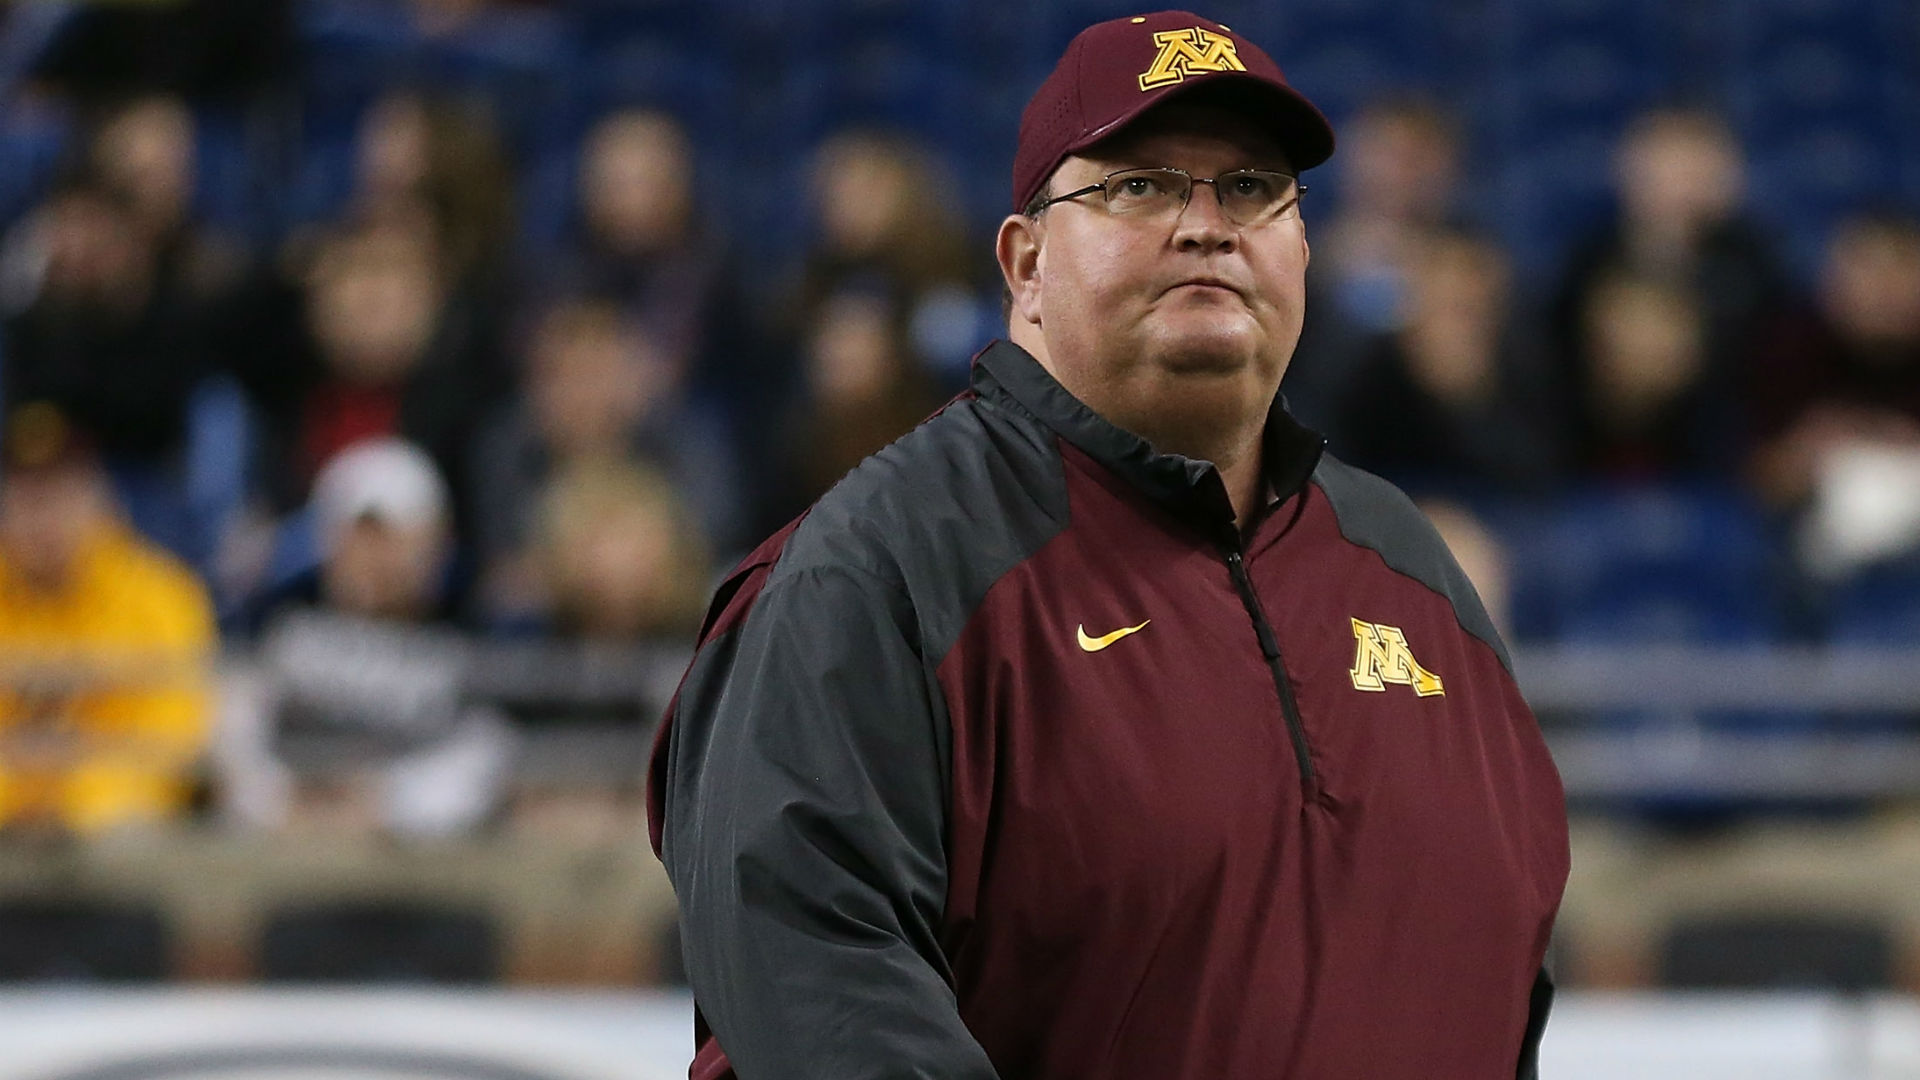 Minnesota players end boycott, will play in the Holiday Bowl